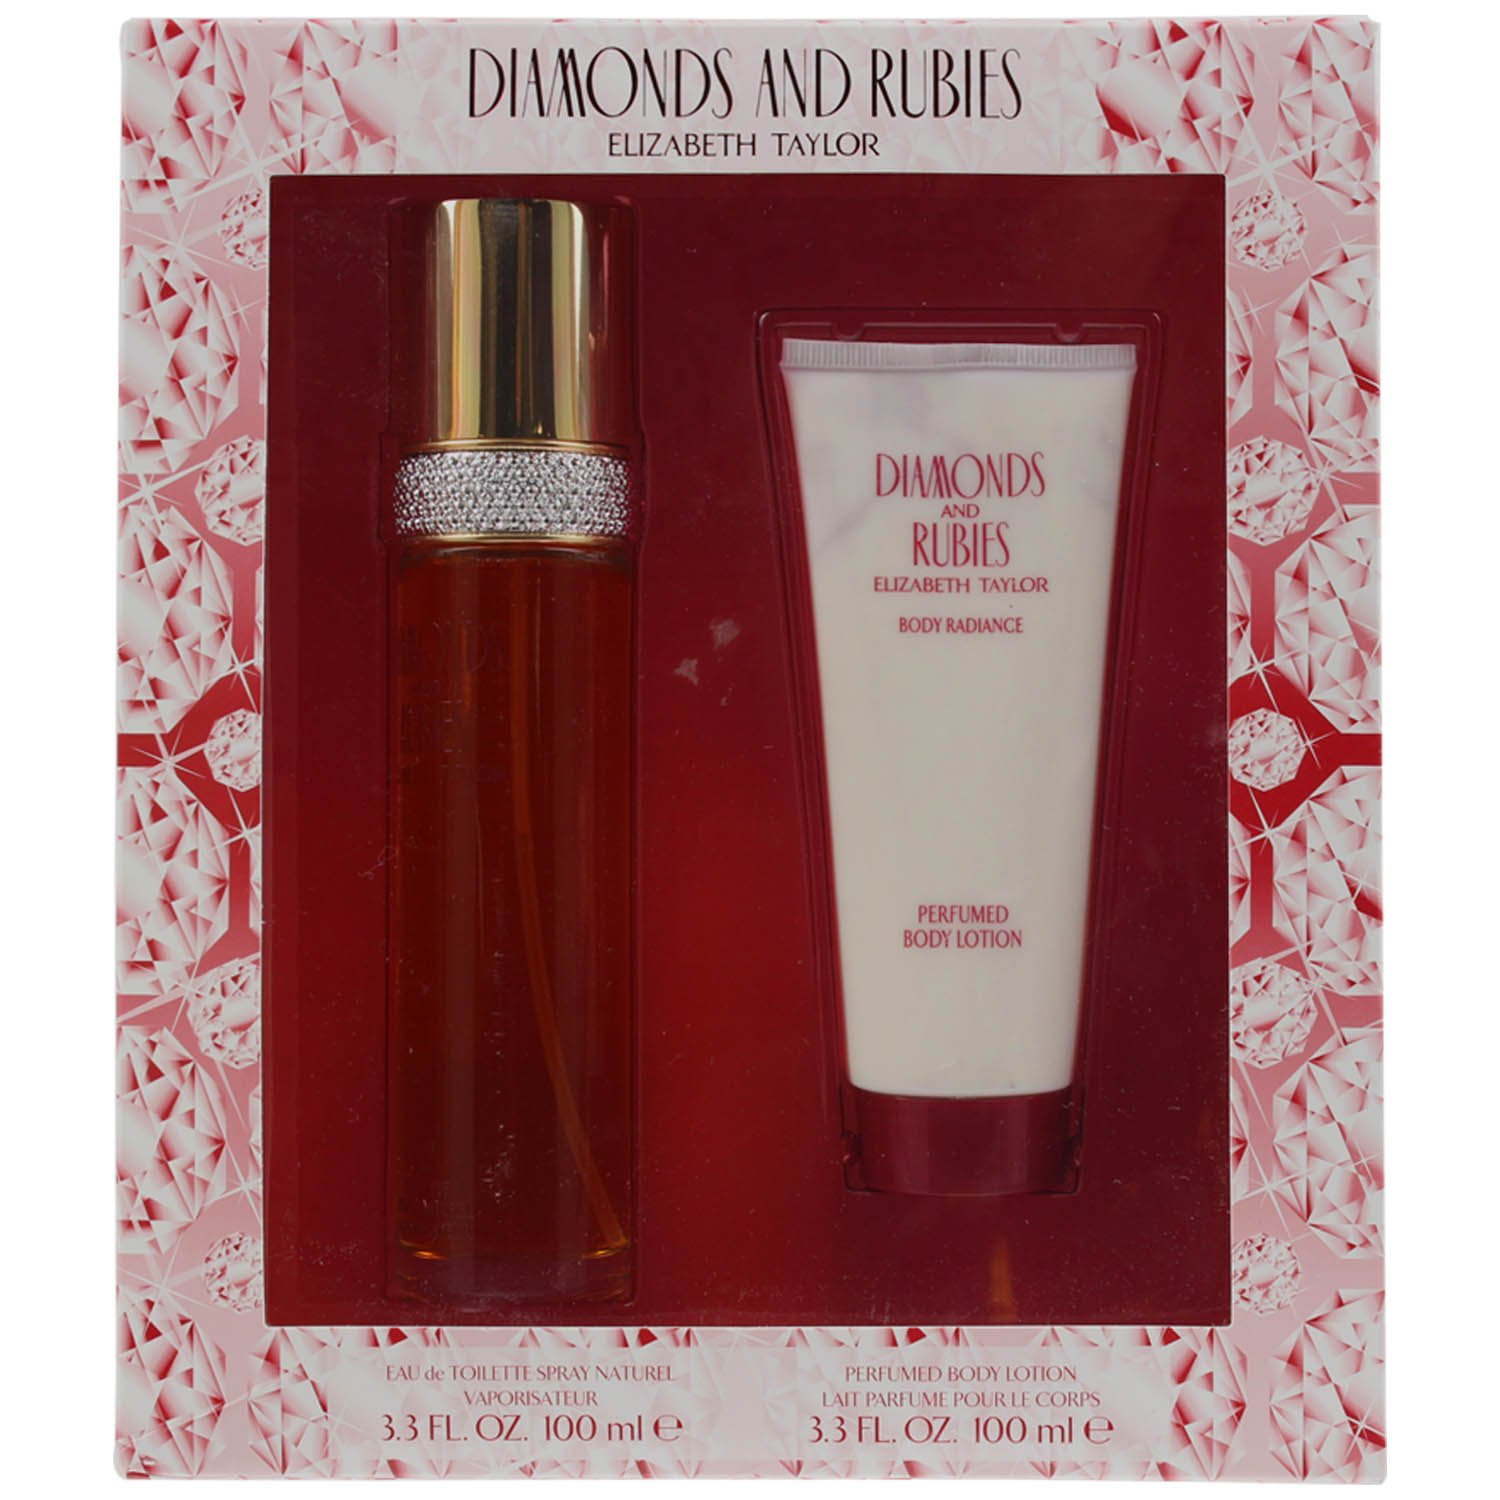 Diamonds And Rubies By Elizabeth Taylor For Women - 2Pc Gift Set